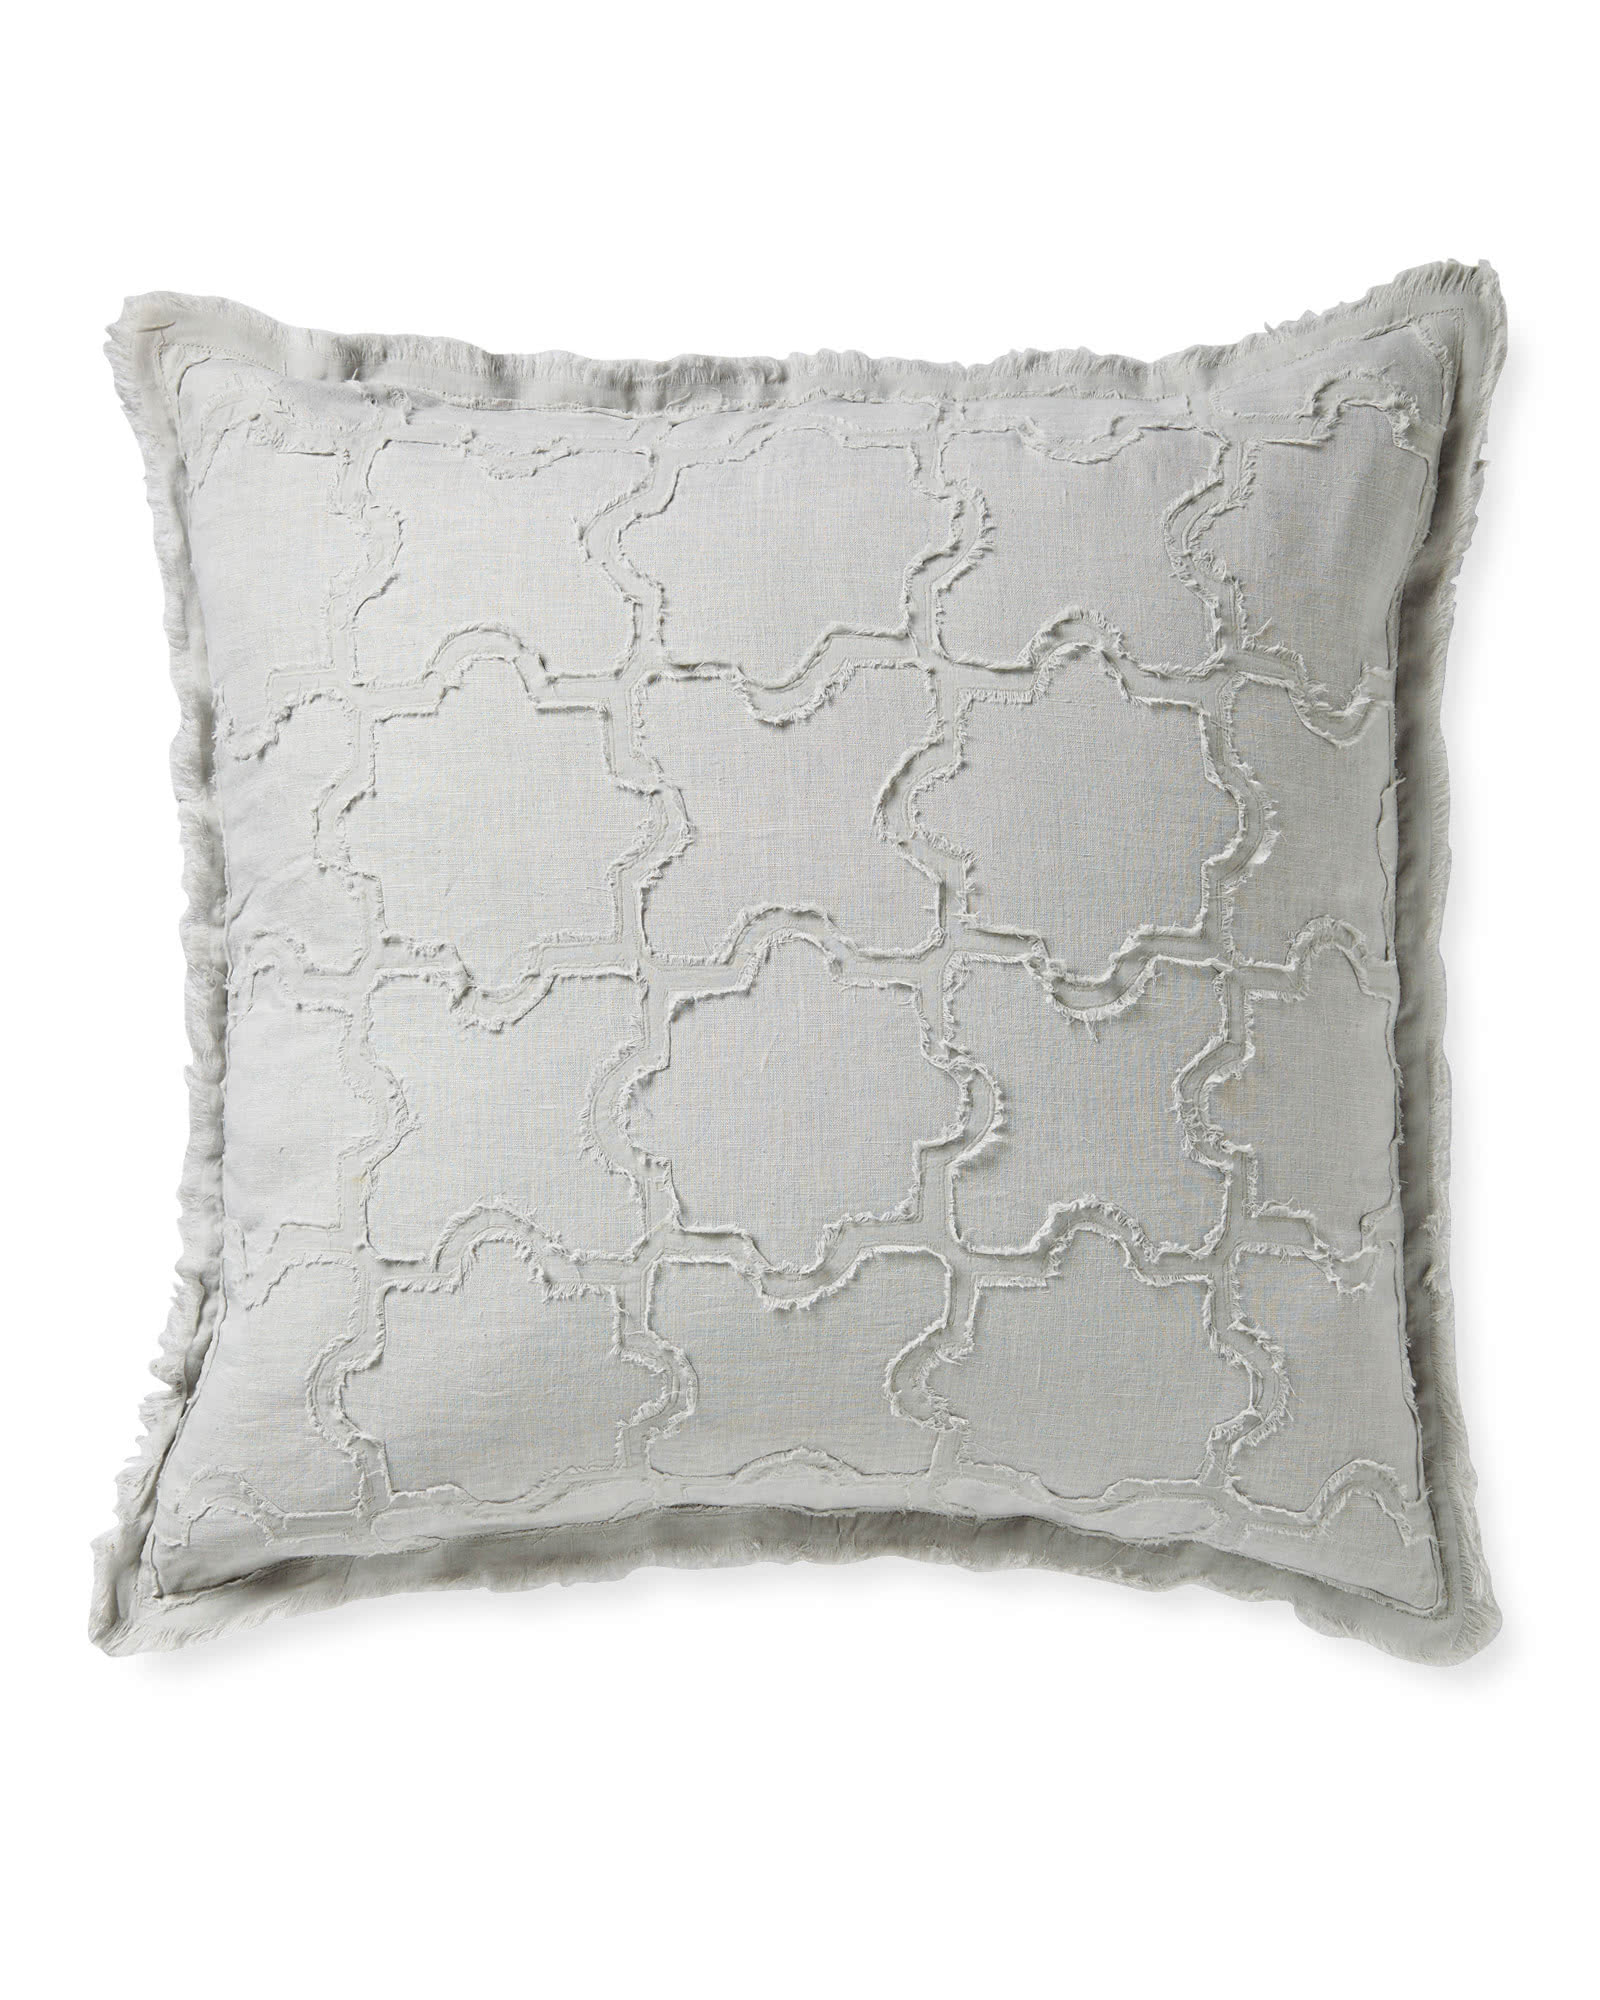 Barcelona Pillow Cover, Fog